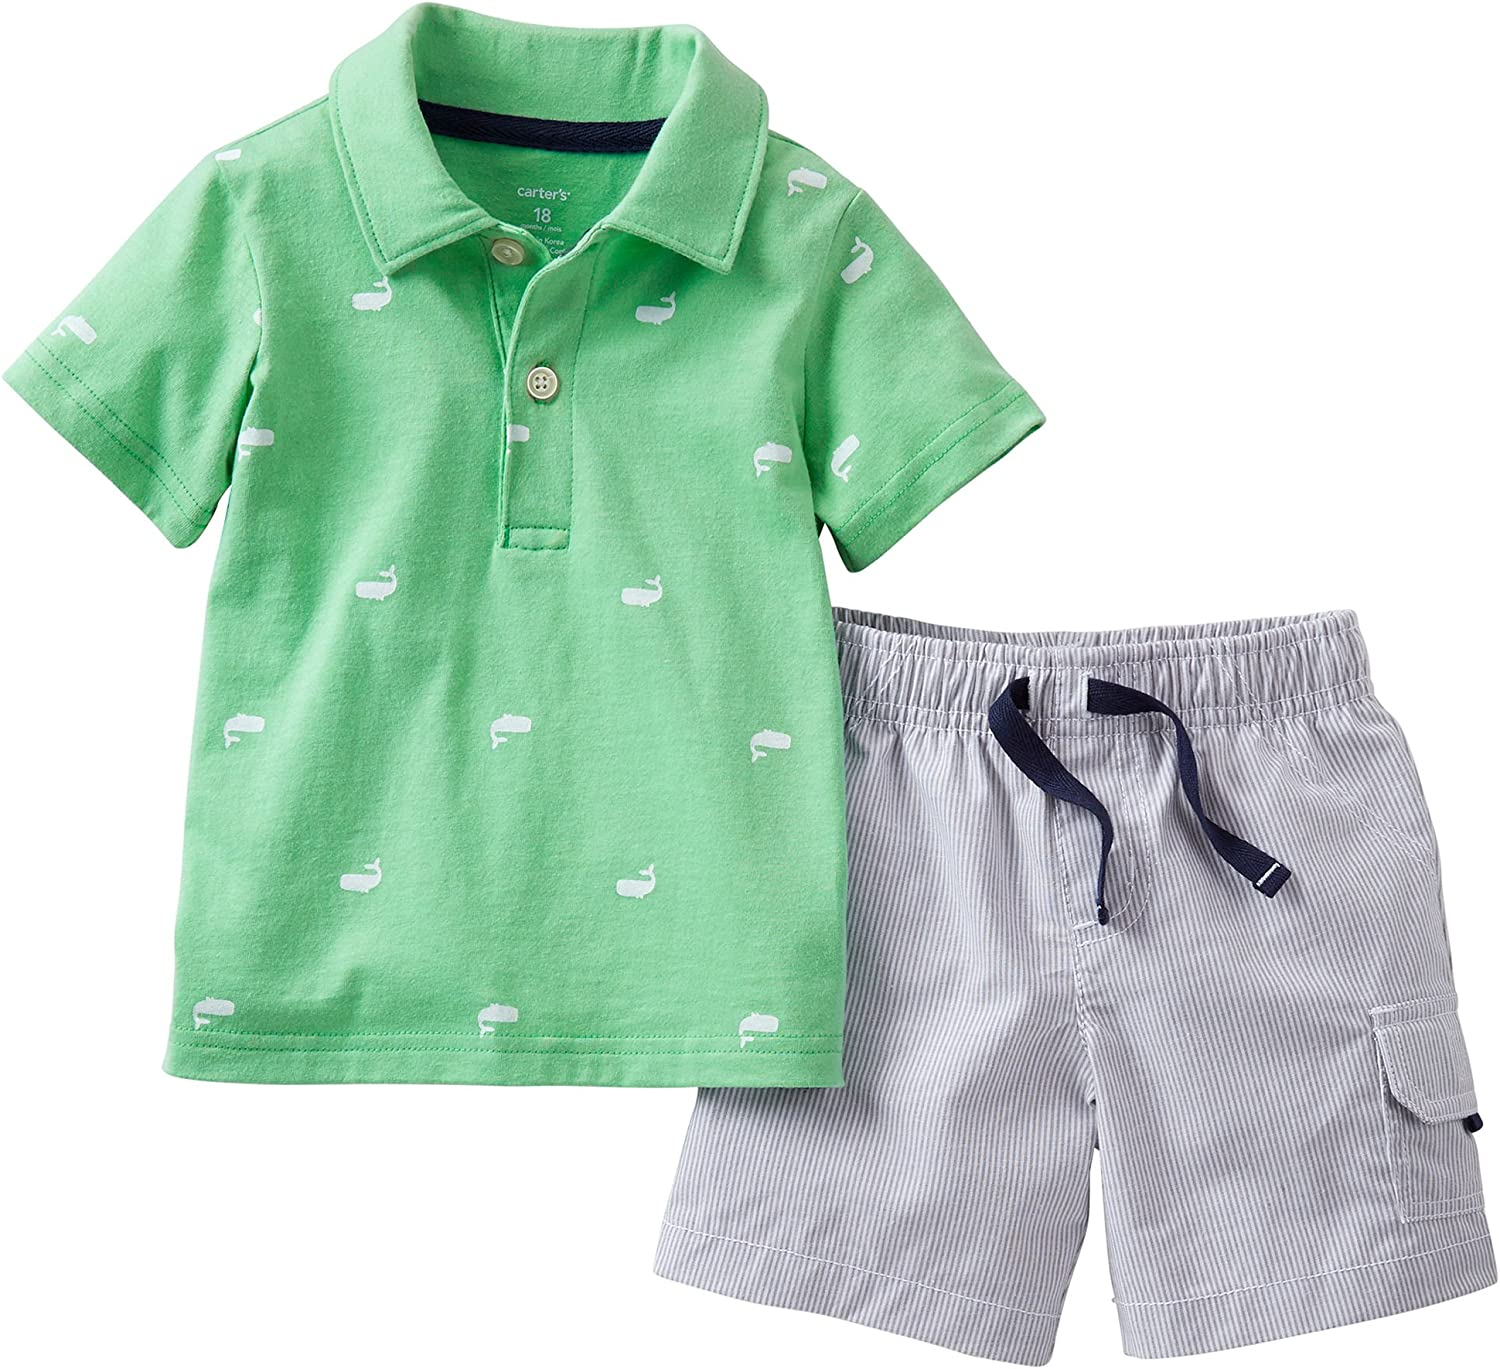 Carter's Baby Boy S Whale Set At the price of surprise Shorts Limited price Shirt Polo Striped